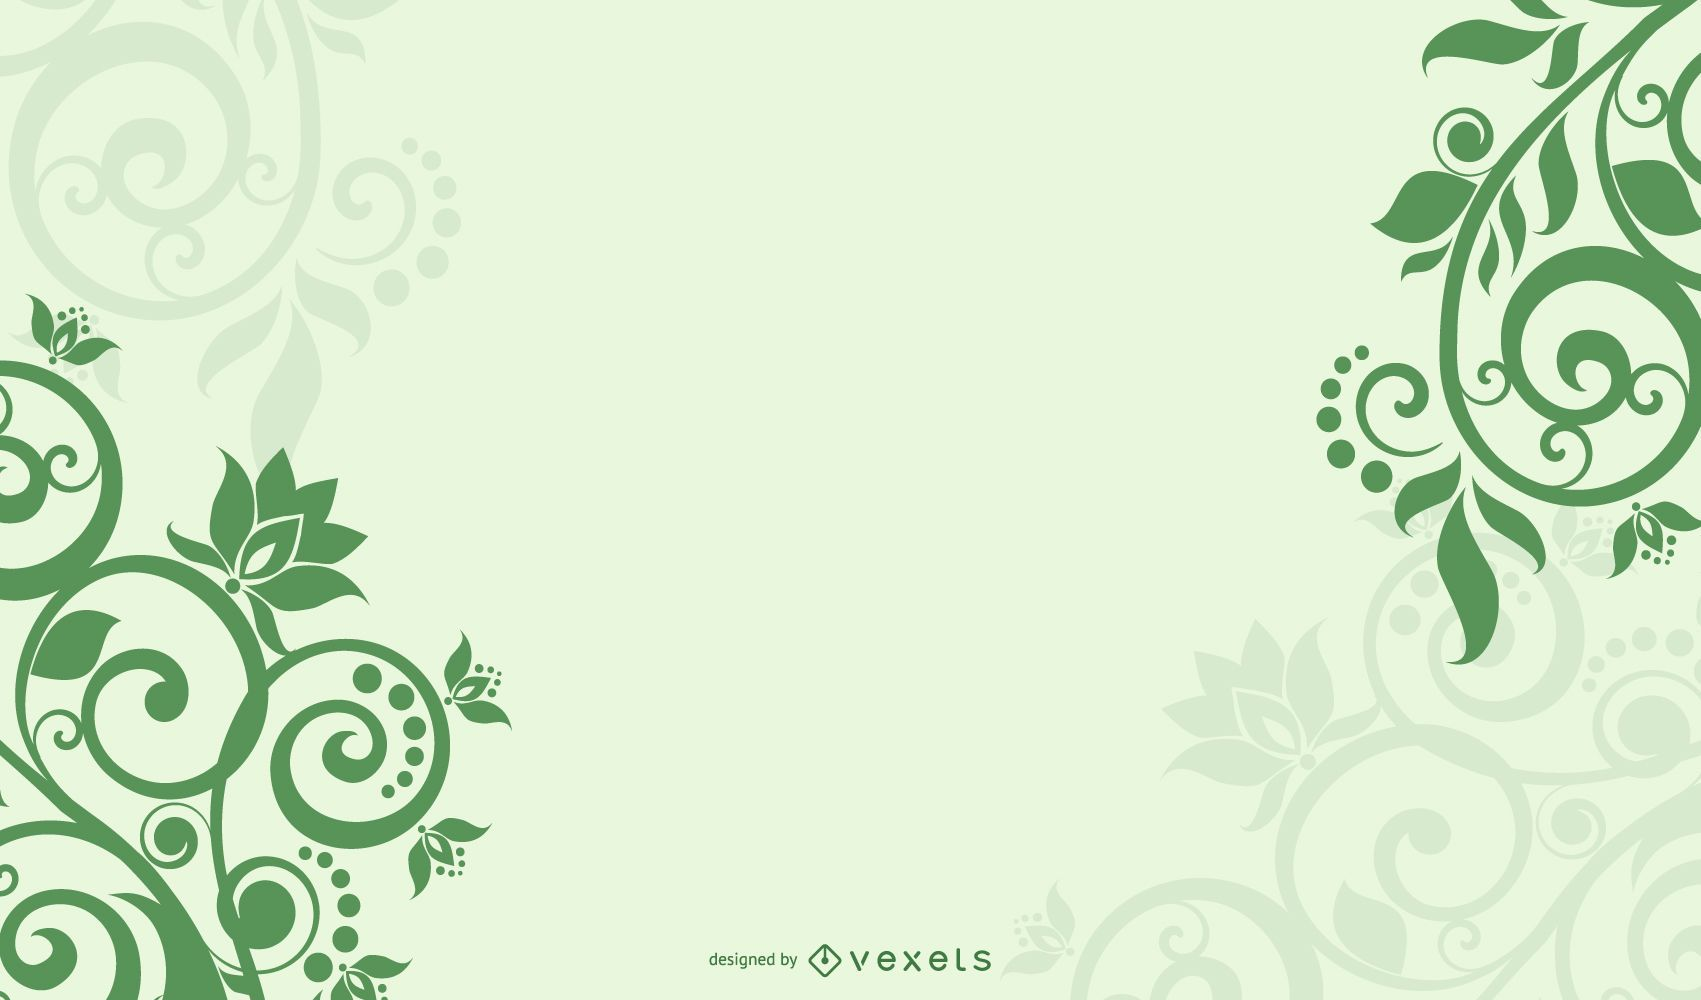 Abstract Floral Background For Design Vector Download